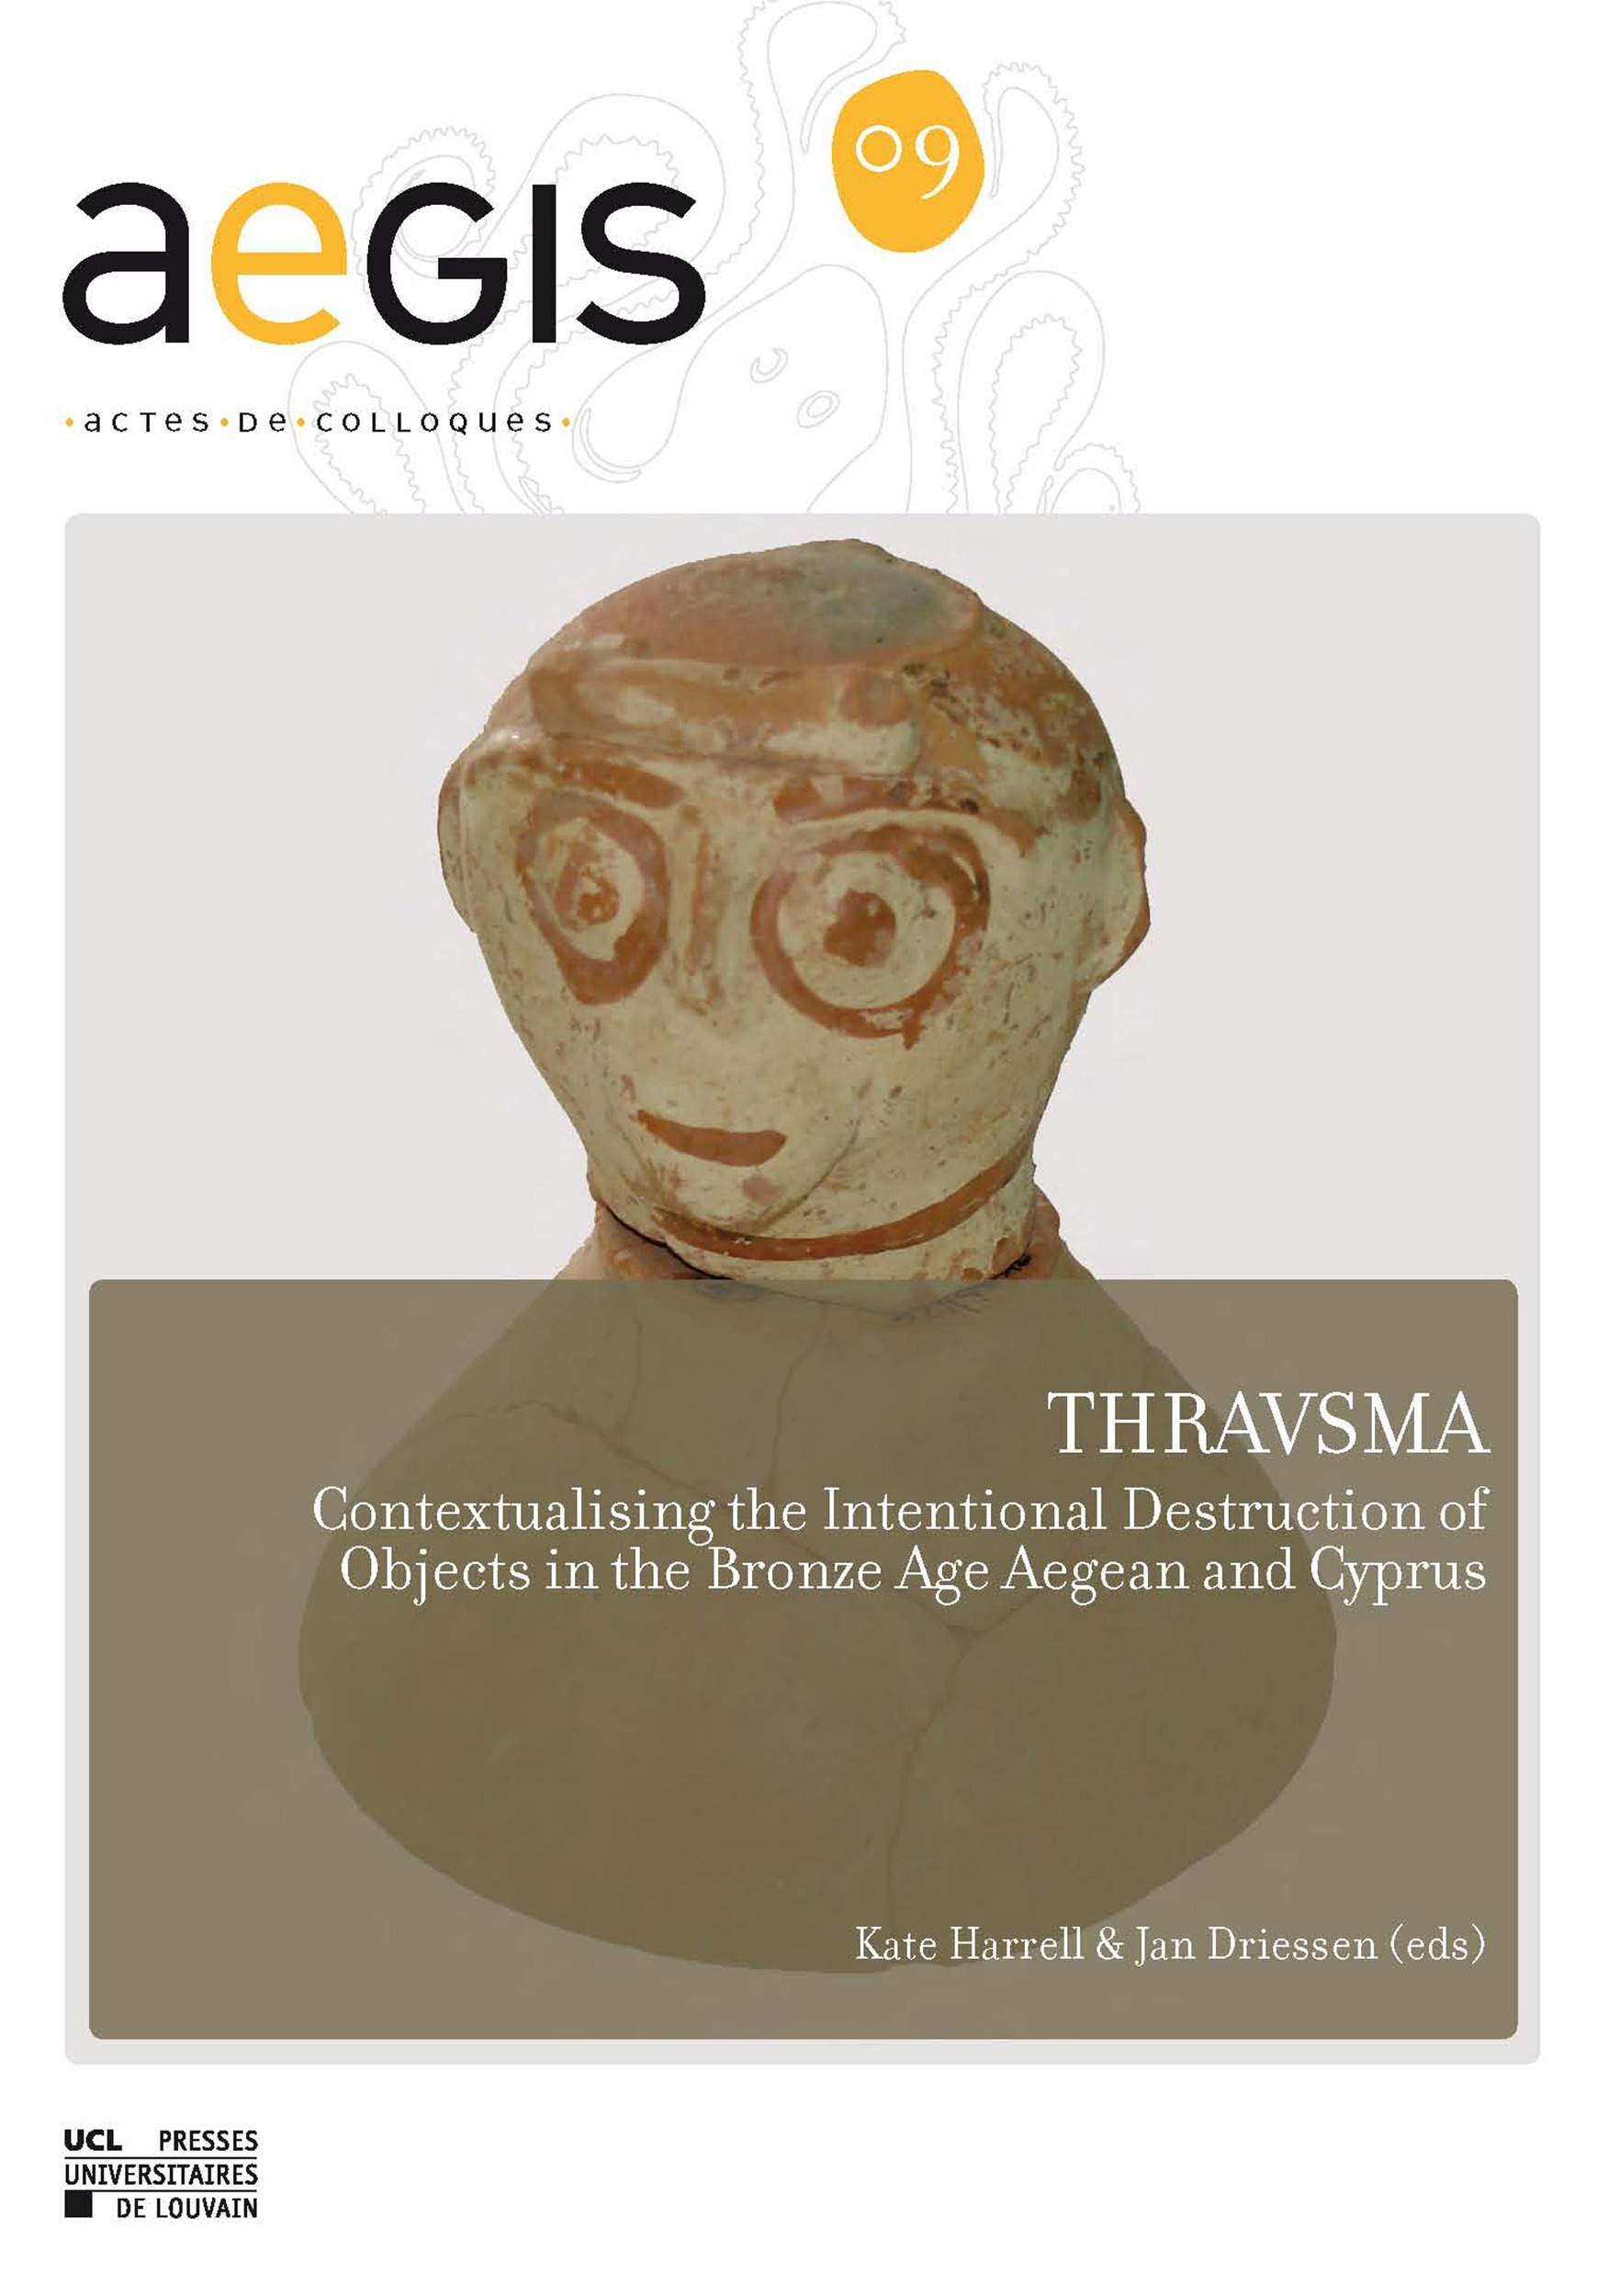 Thravsma. contextualising the intentional destruction of objects in the bronze age aegean and cyprus